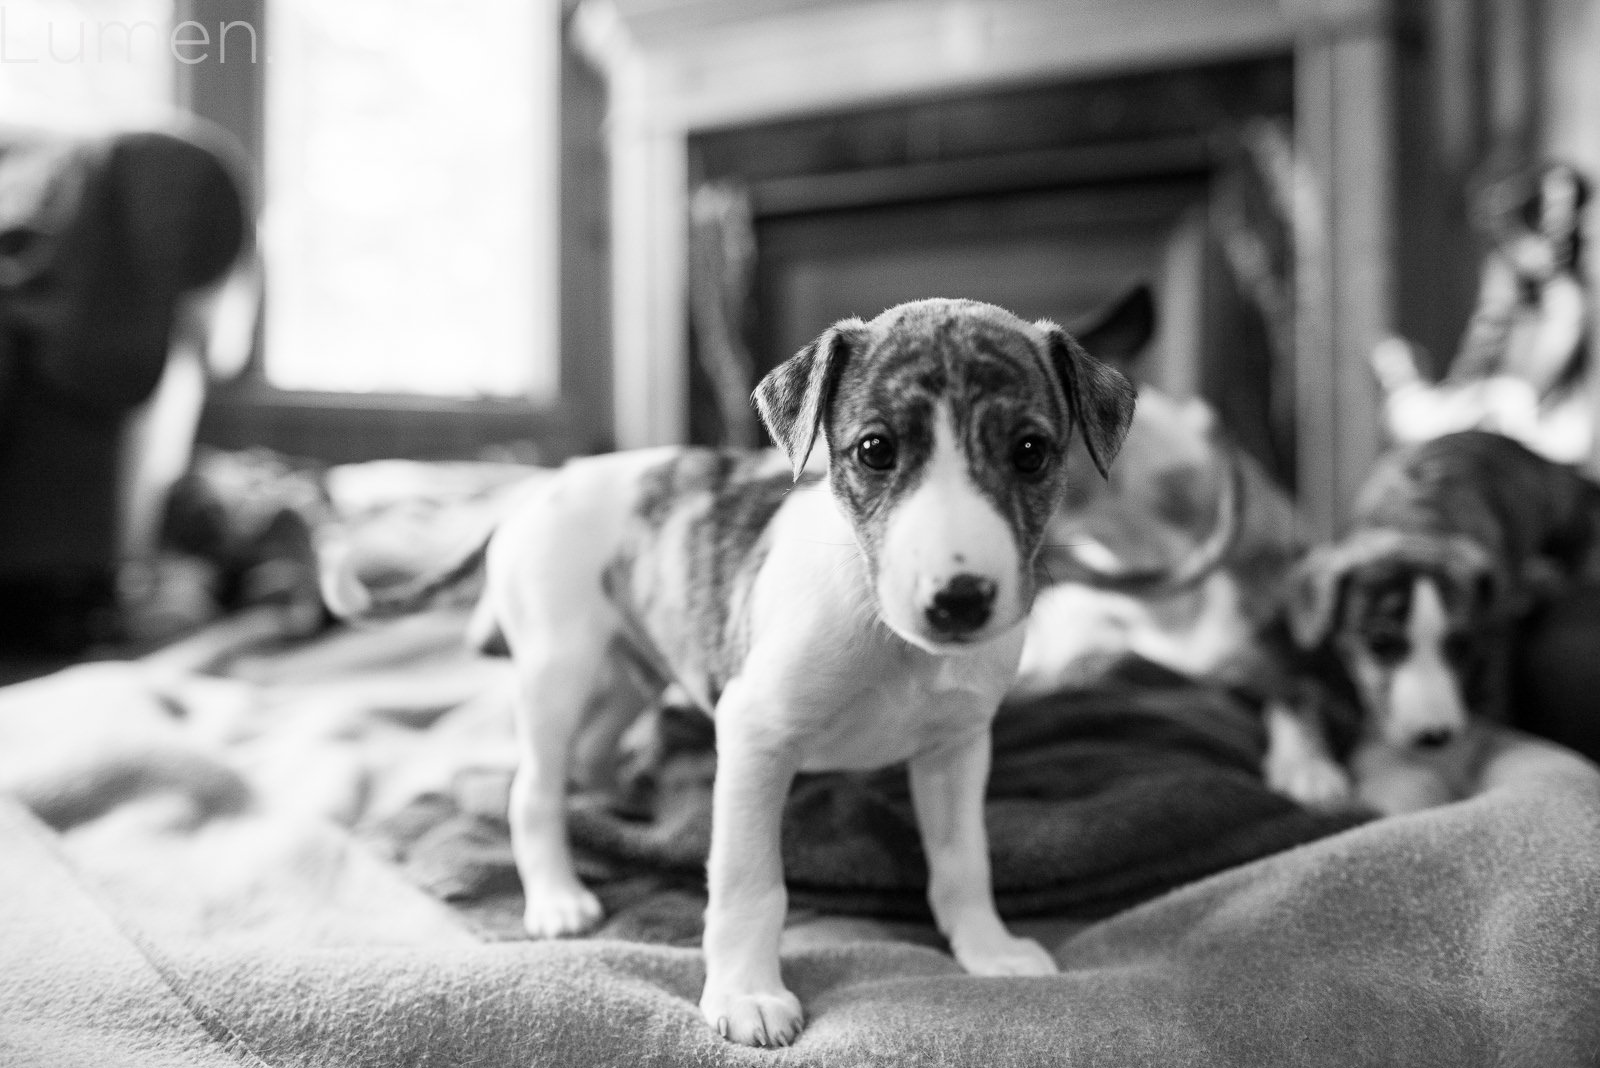 puppy preview, lumen photography, adventurous photography, couture, duluth, minneapolis, minnesota, whippet, dog